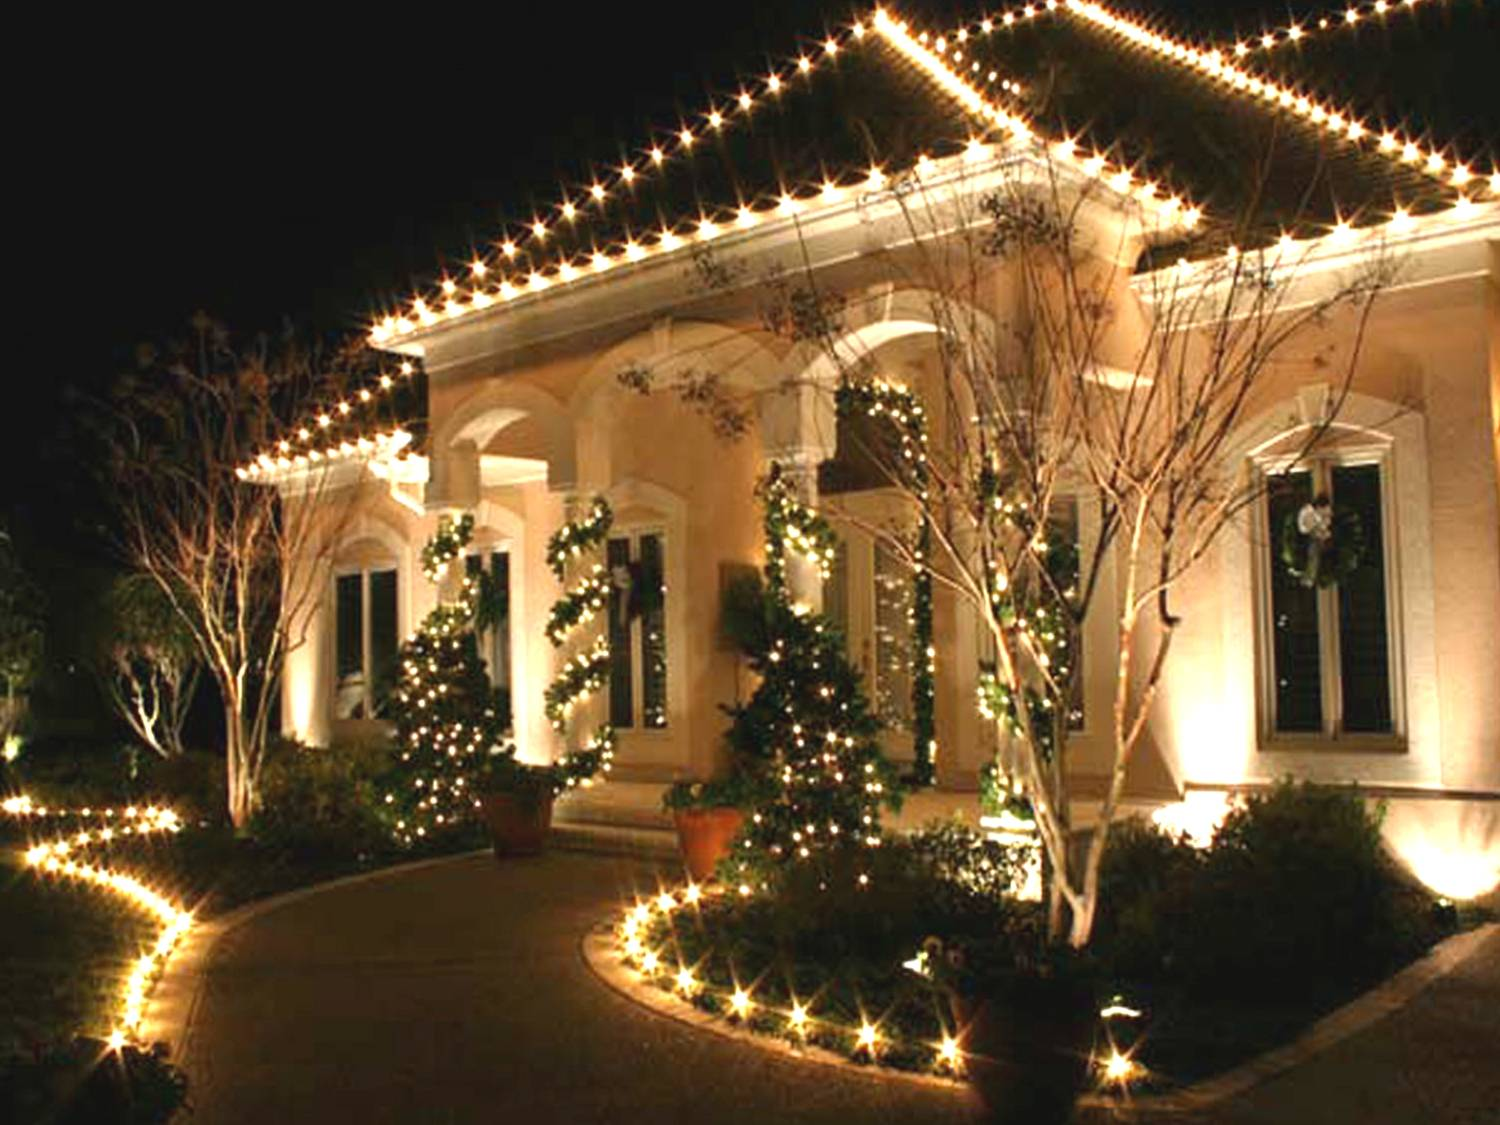 Swingle Ceo July Increase In Christmas Lighting And